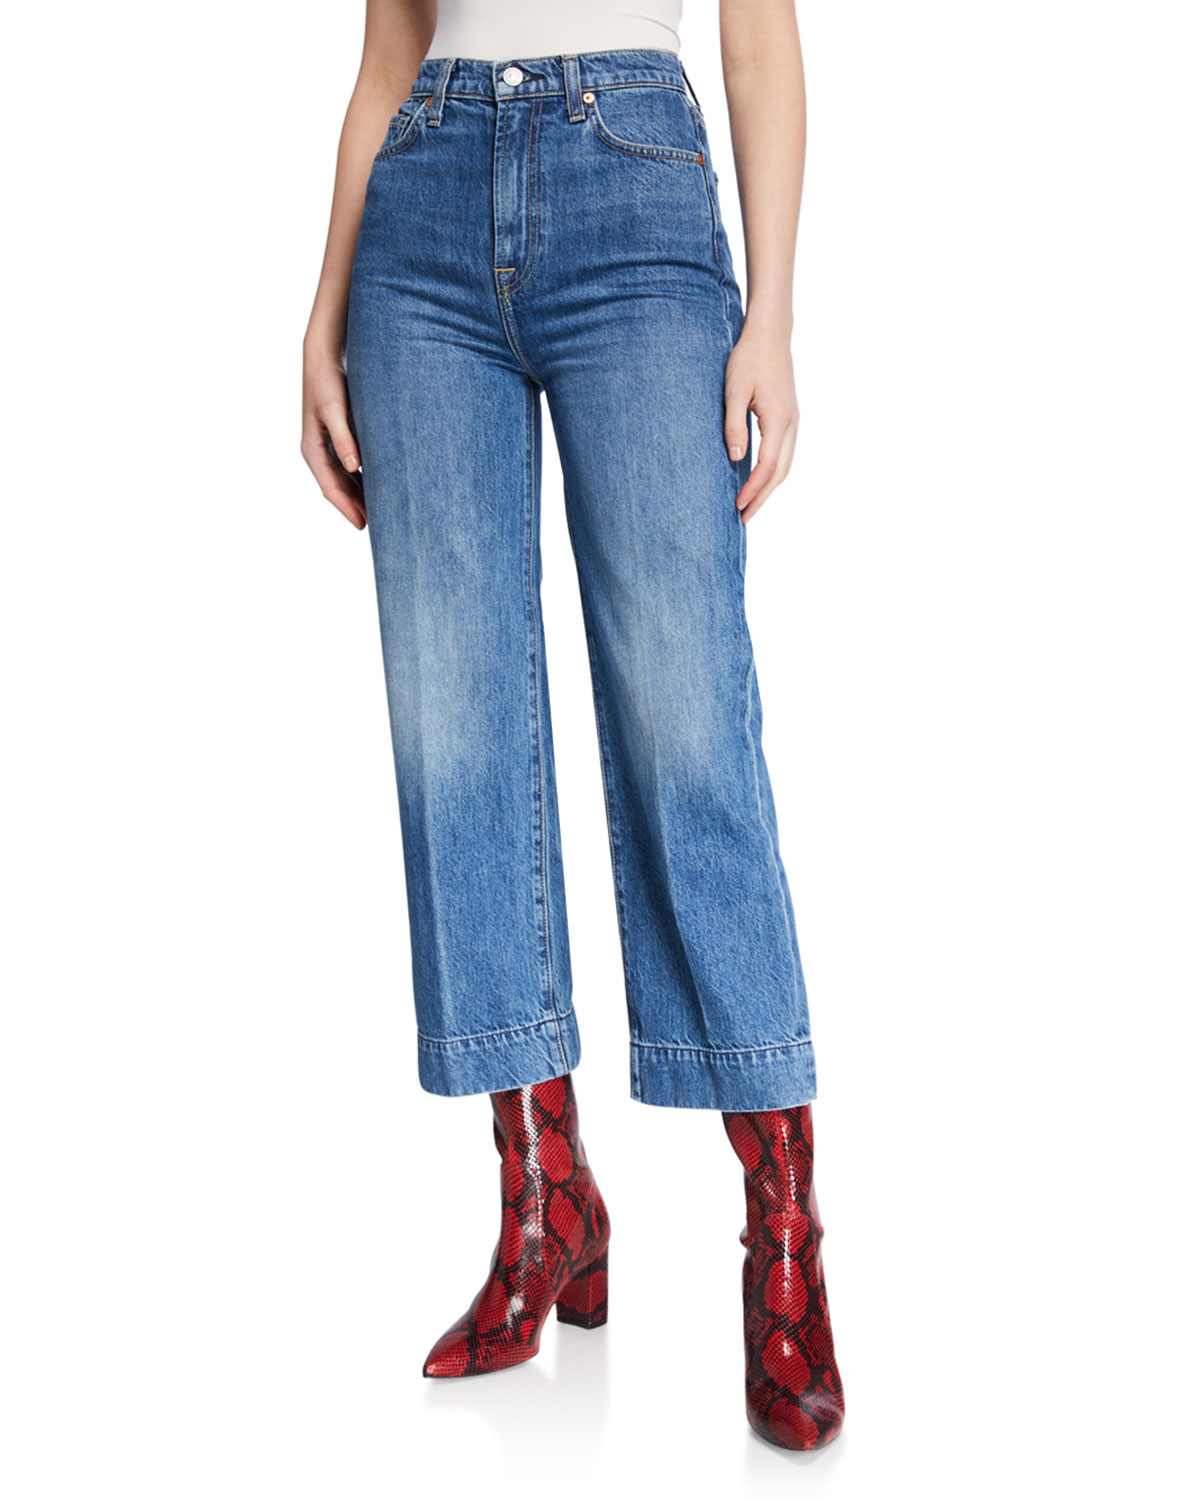 moneda Continuo Disfrazado  7 for all mankind Baby Jo High-Rise Wide-Leg Jeans | Neiman Marcus